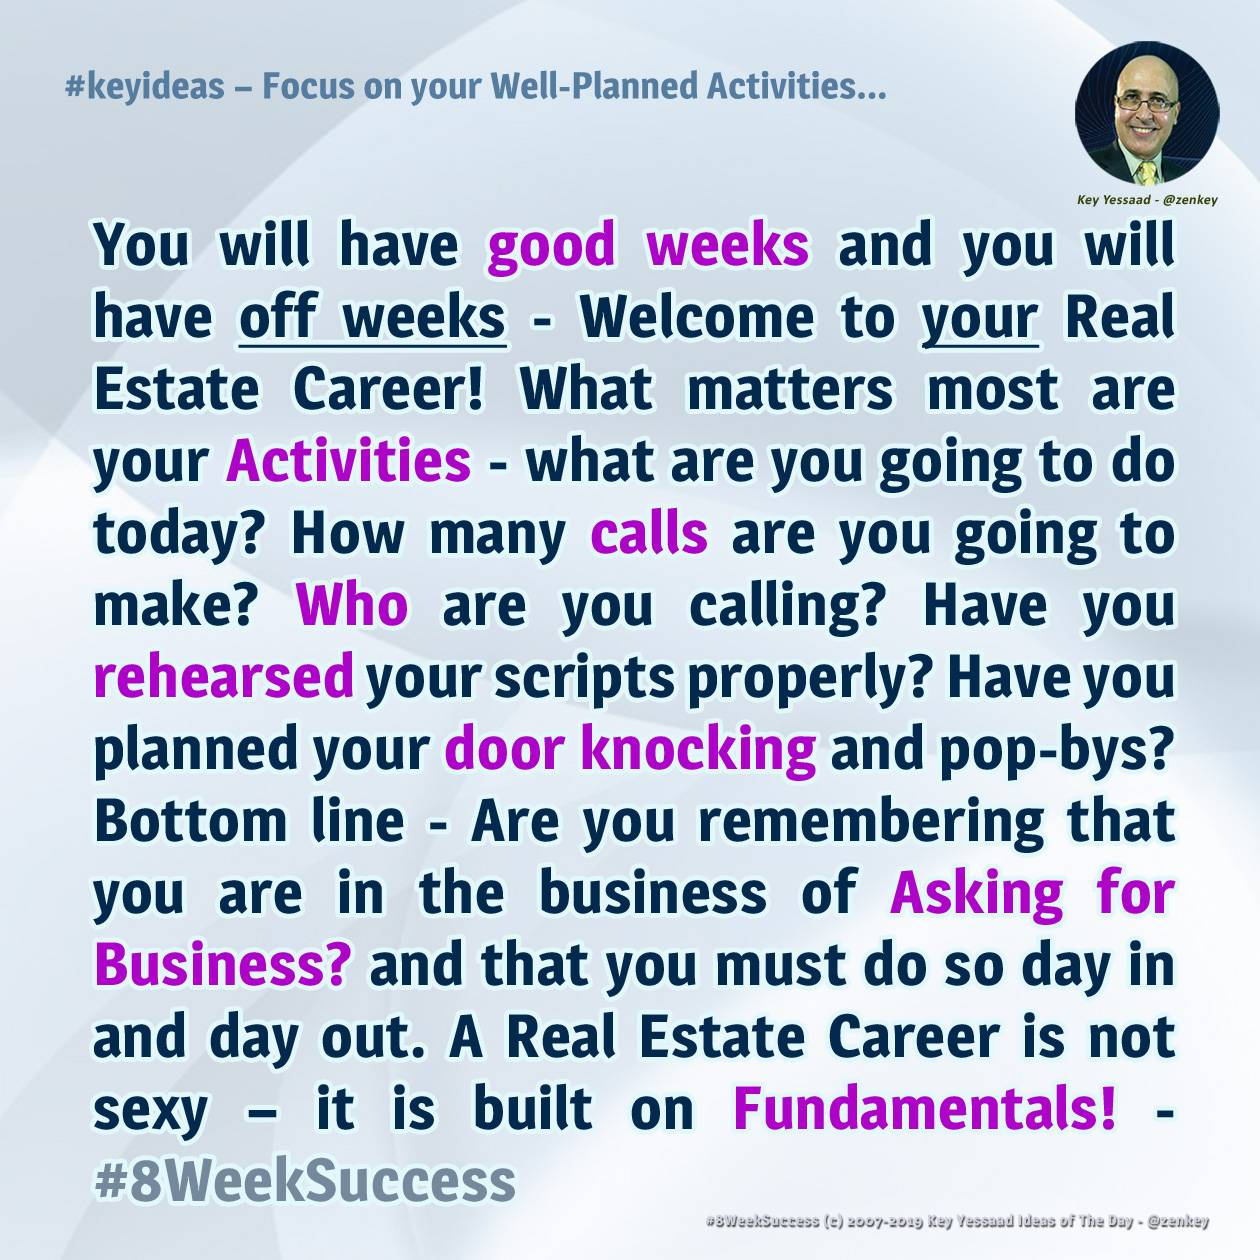 Focus on your Well-Planned Activities - #8WeekSuccess